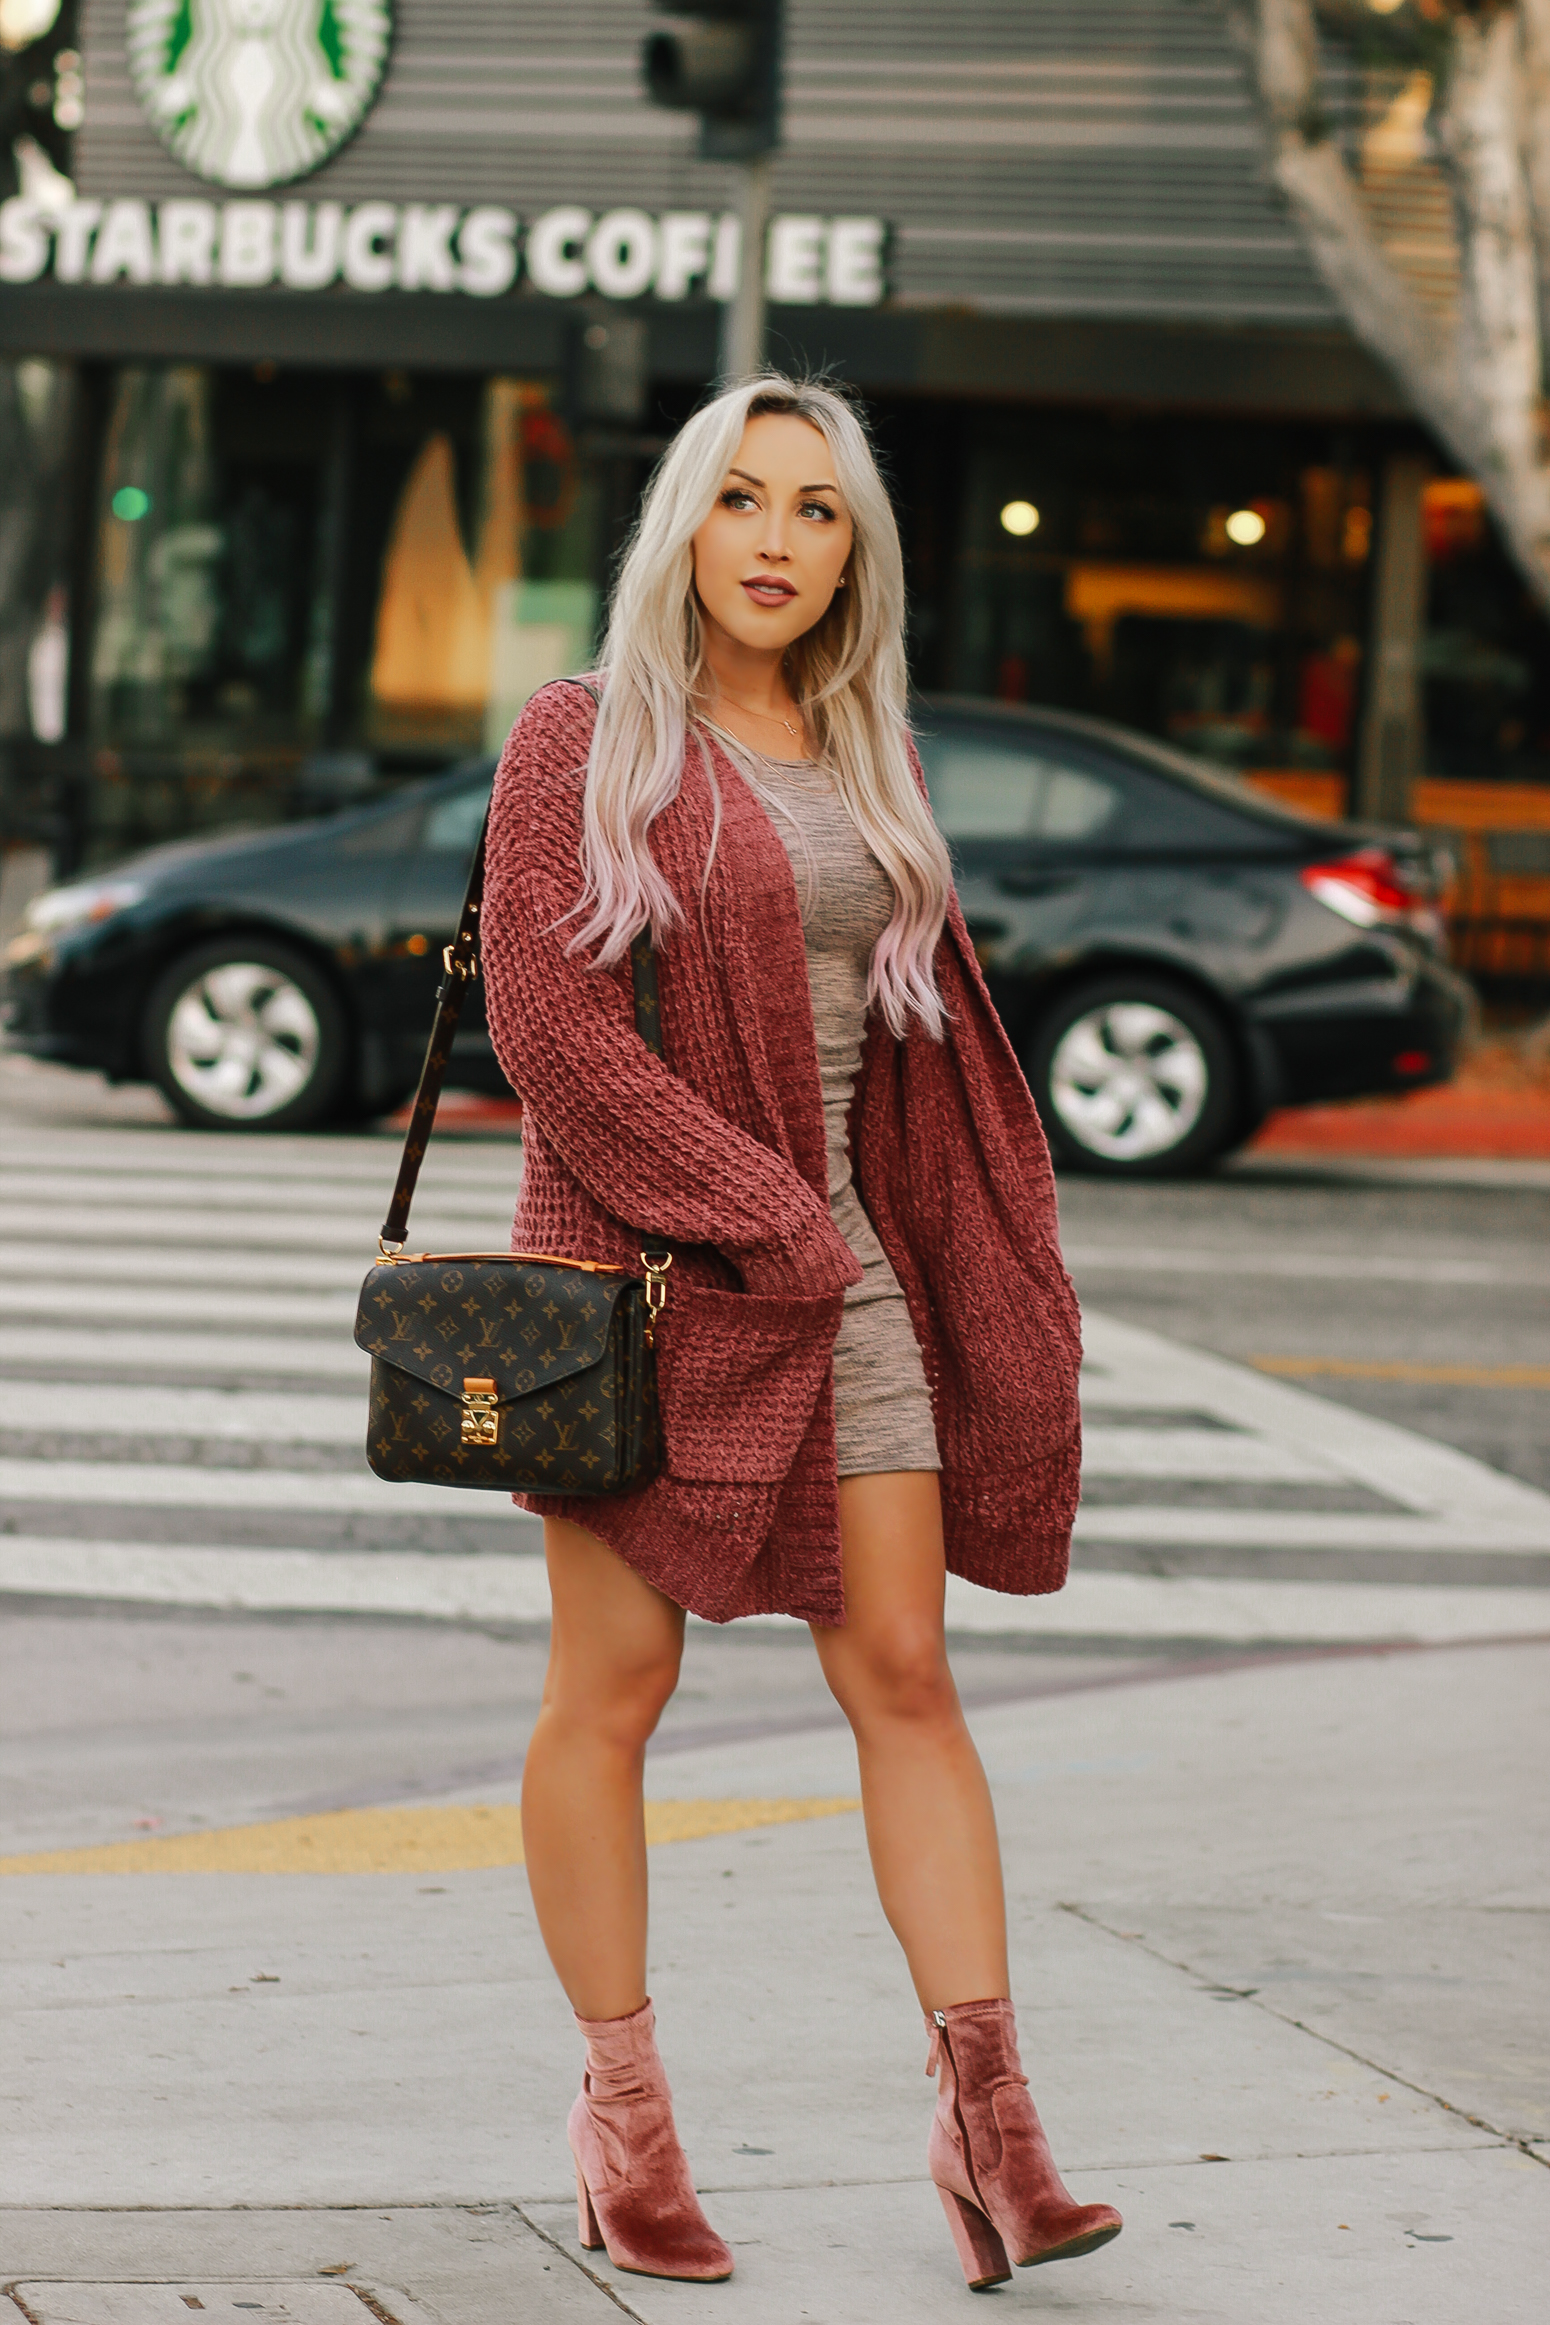 Blondie in the City | Fall Fashion | Cozy Cardigan, Pink Velvet Boots